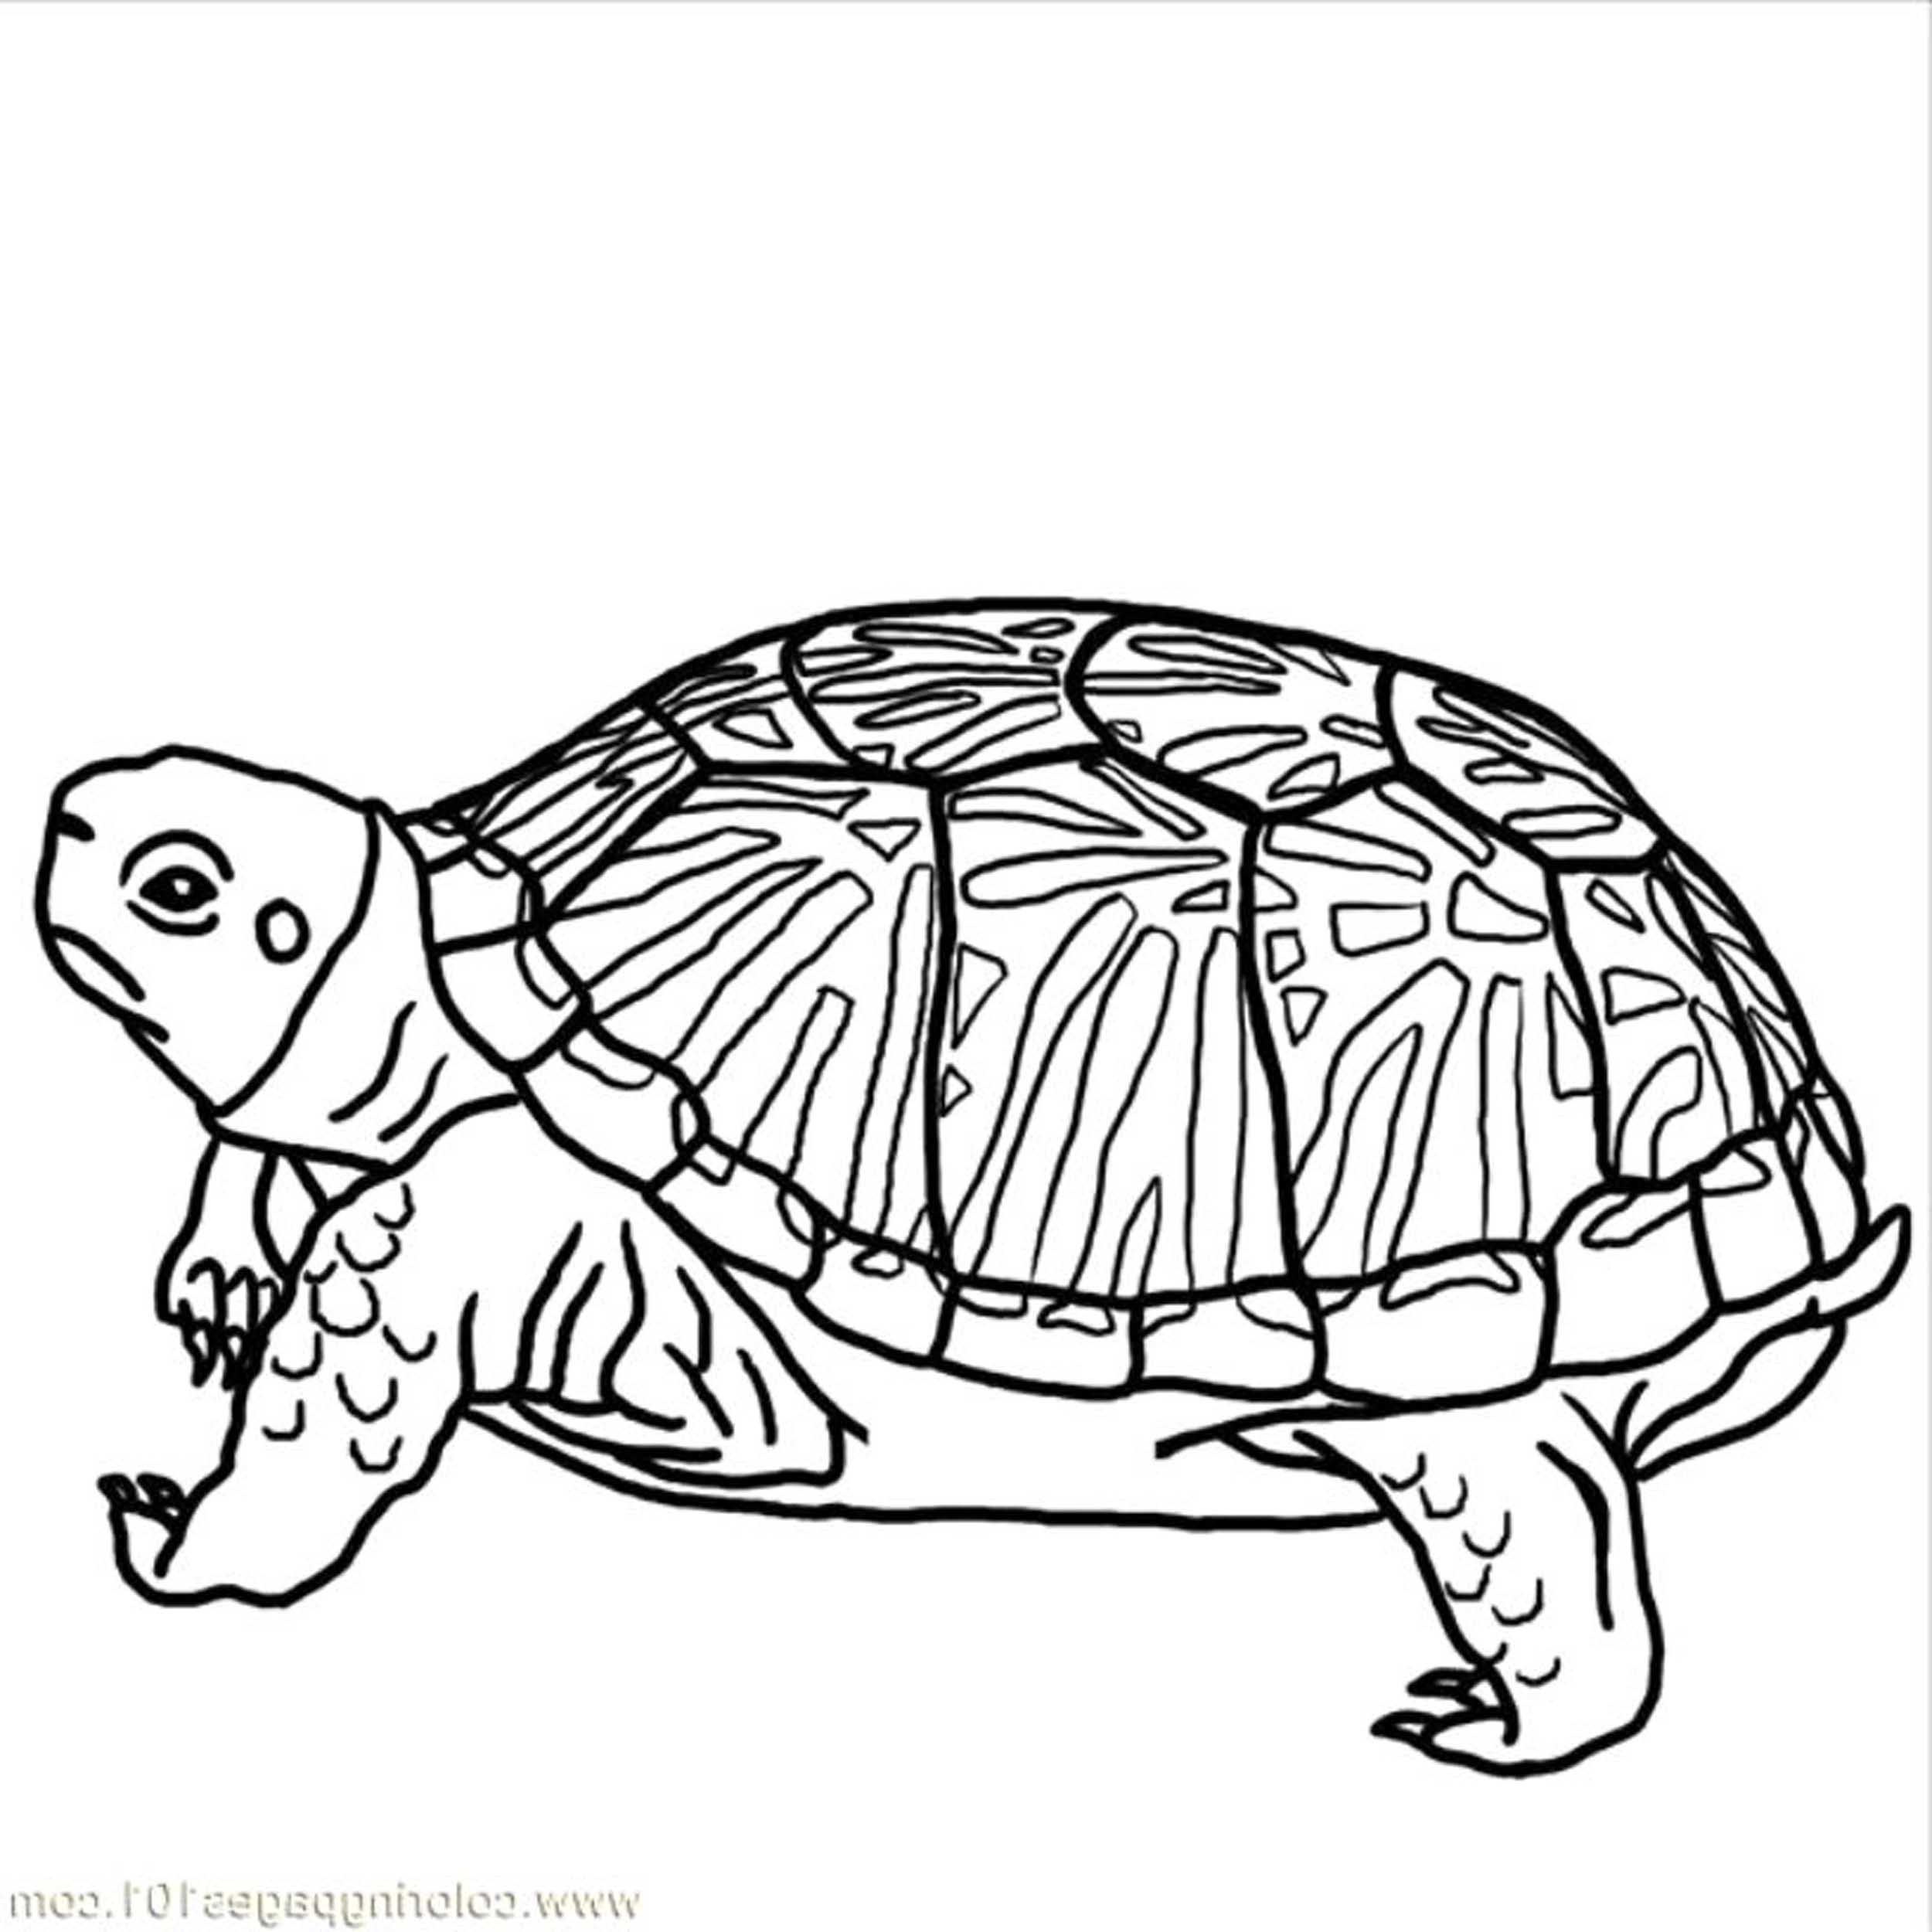 coloring pages turtle sea turtle colored pencil tutorial lachri fine art turtle coloring pages